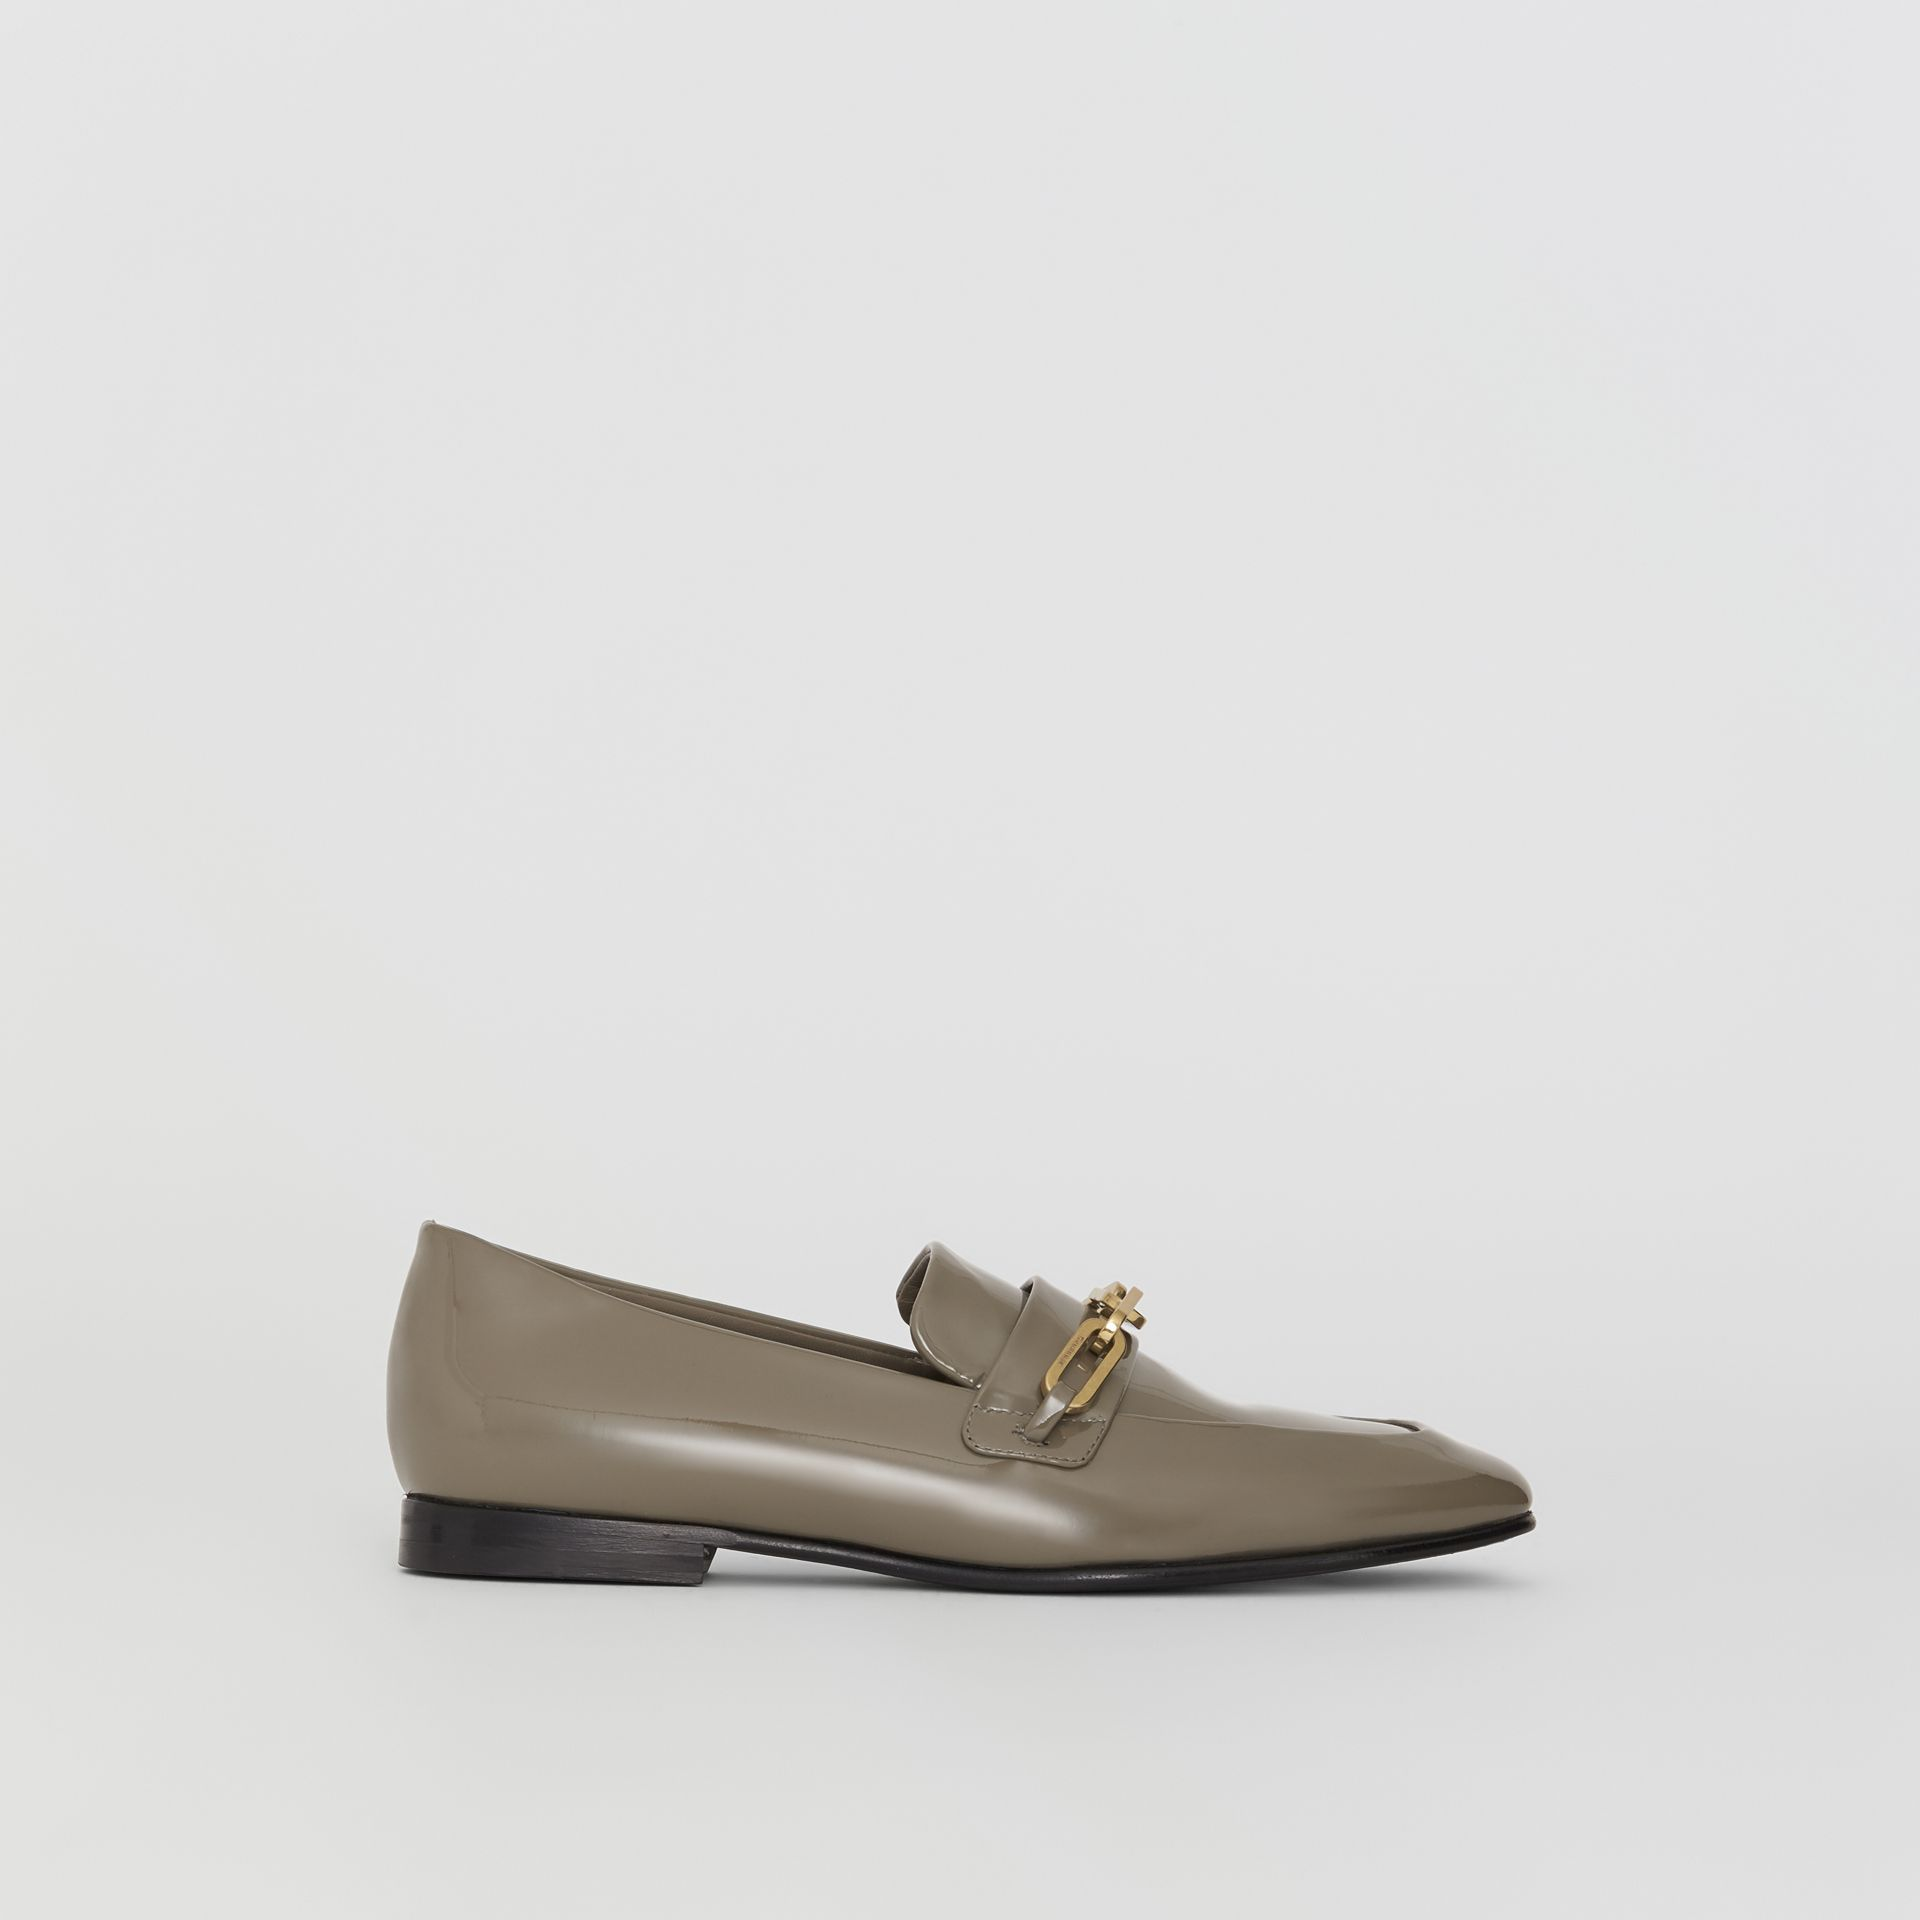 Link Detail Patent Leather Loafers in Taupe Grey - Women | Burberry Singapore - gallery image 5